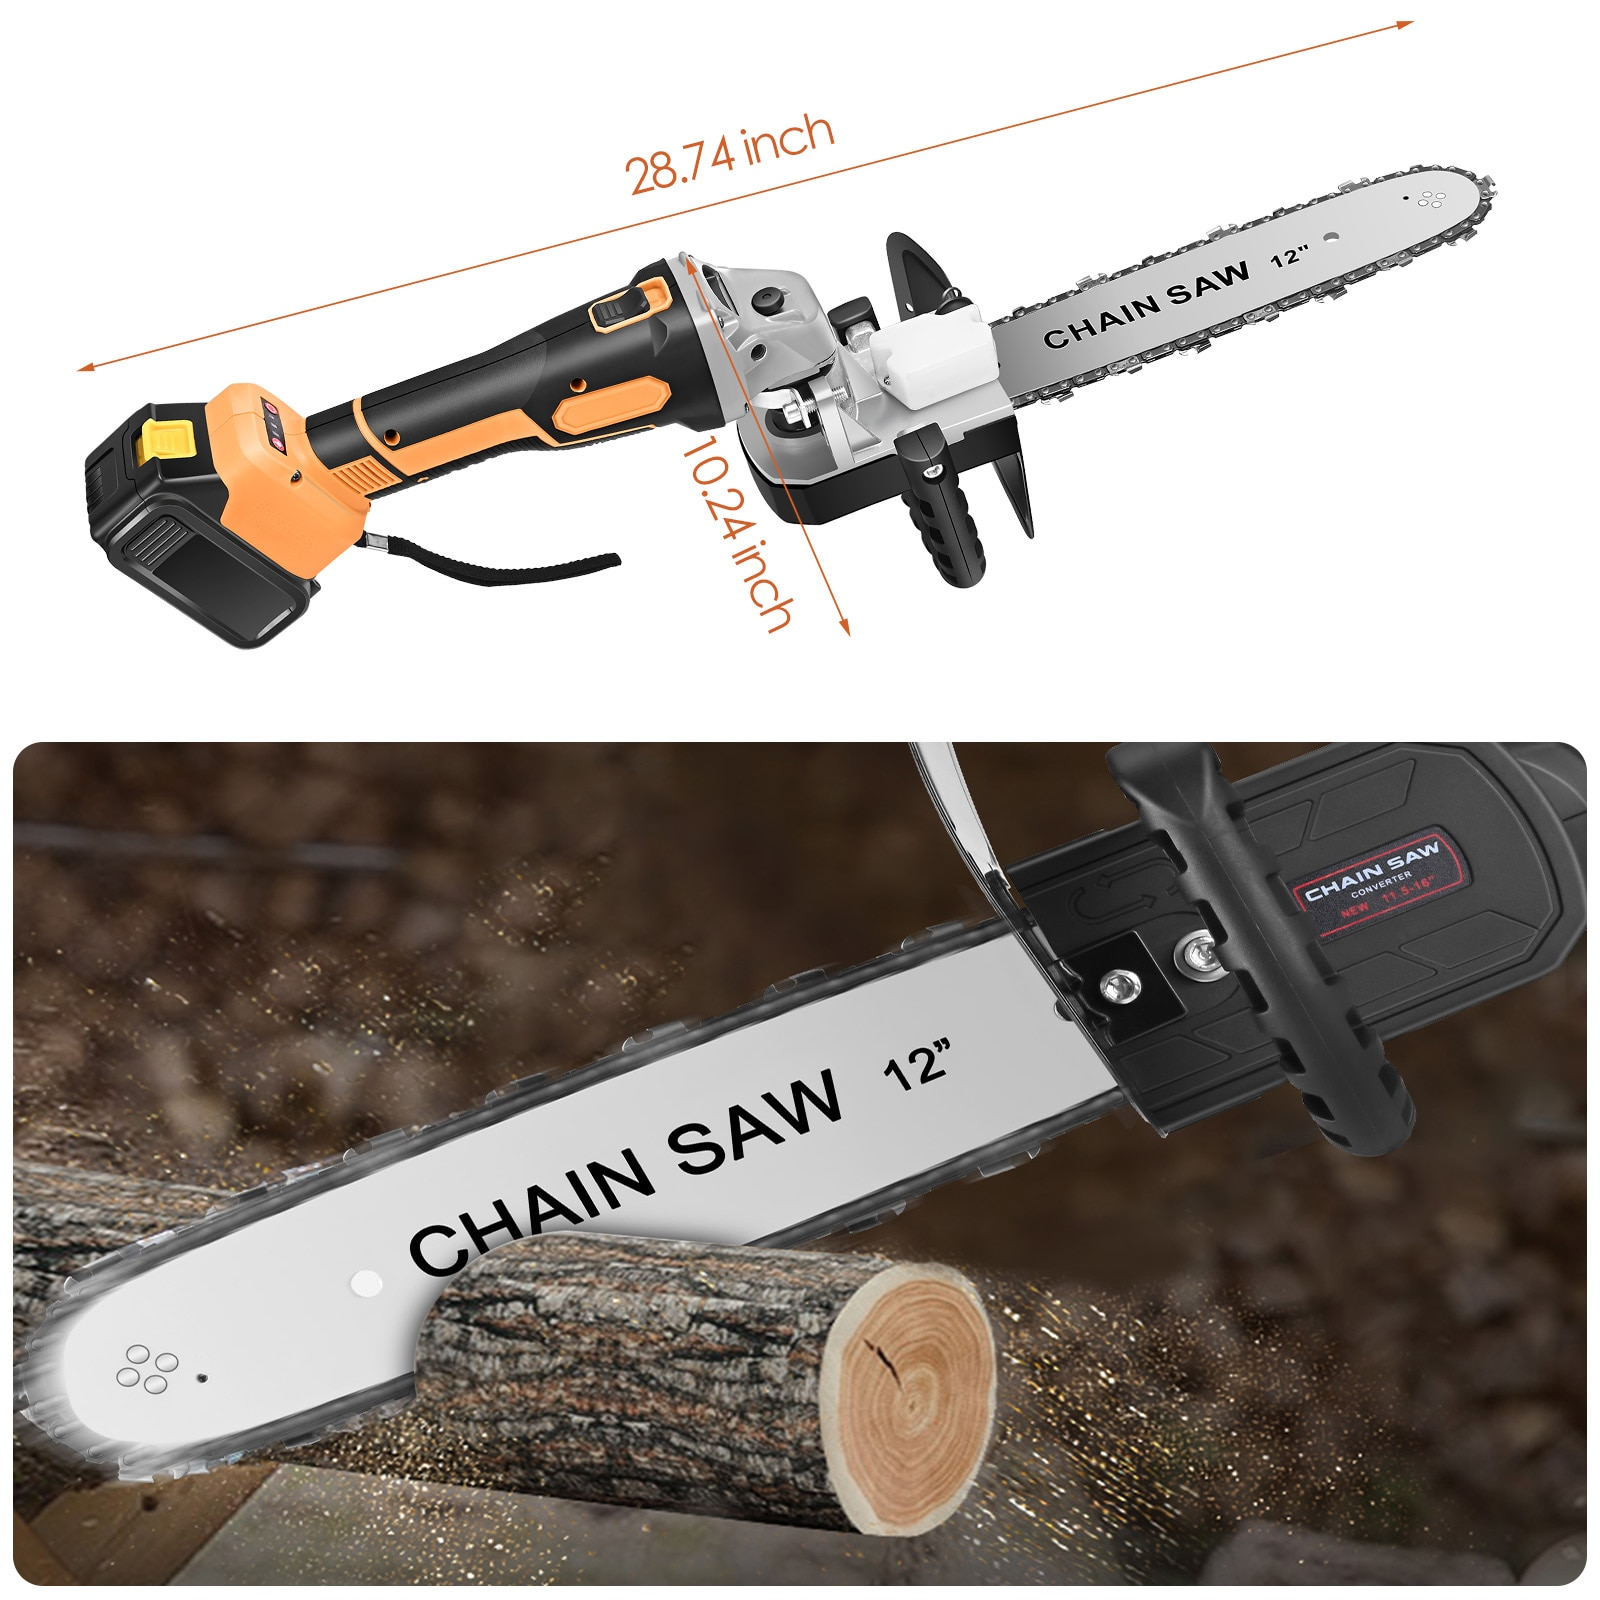 21V Chainsaws Cordless Angle Grinder Tool With 12